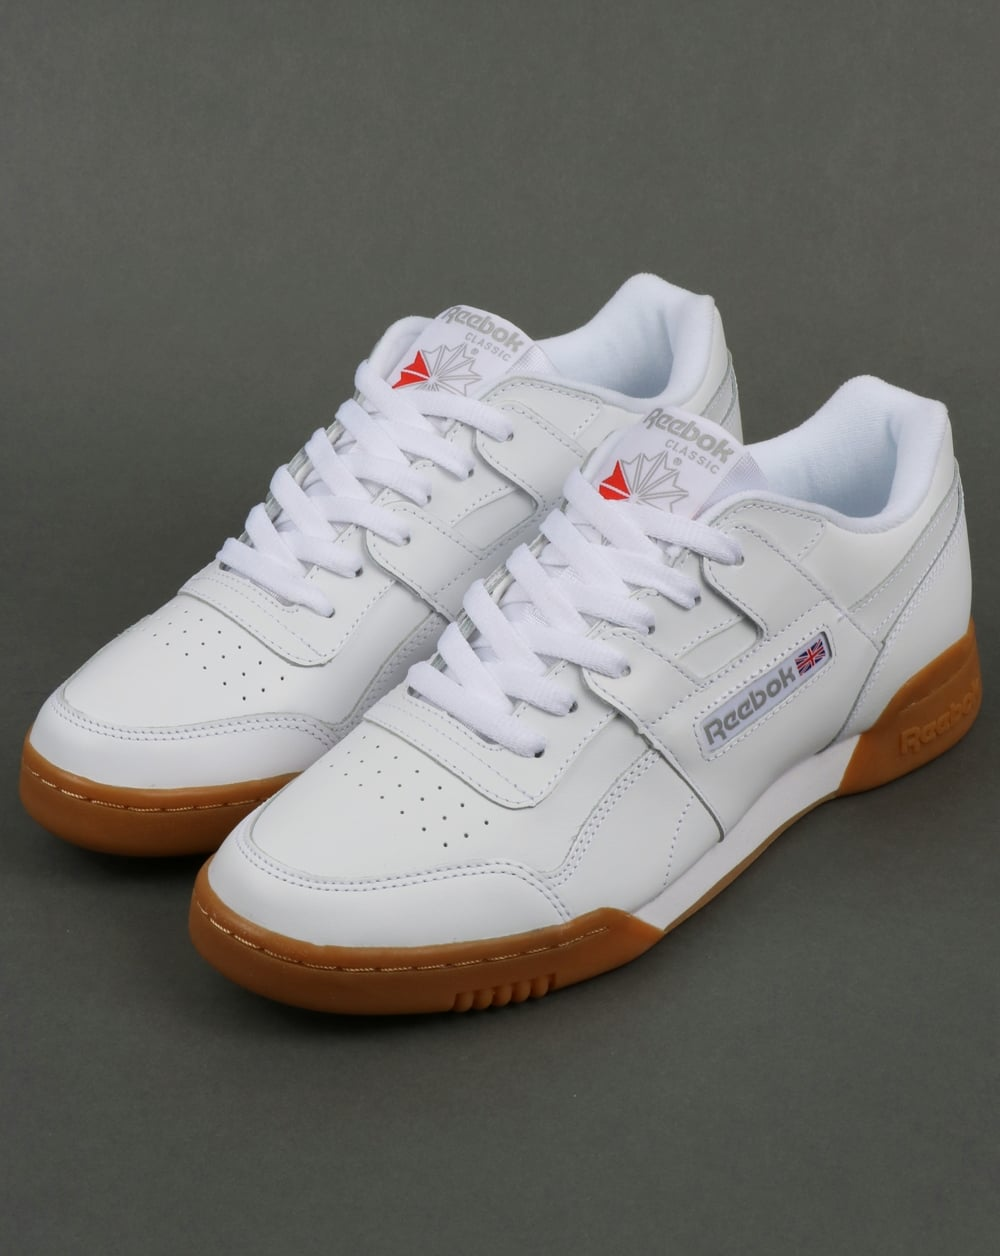 39cde3fc80e Reebok Workout Plus Trainers in White Carbon Gum